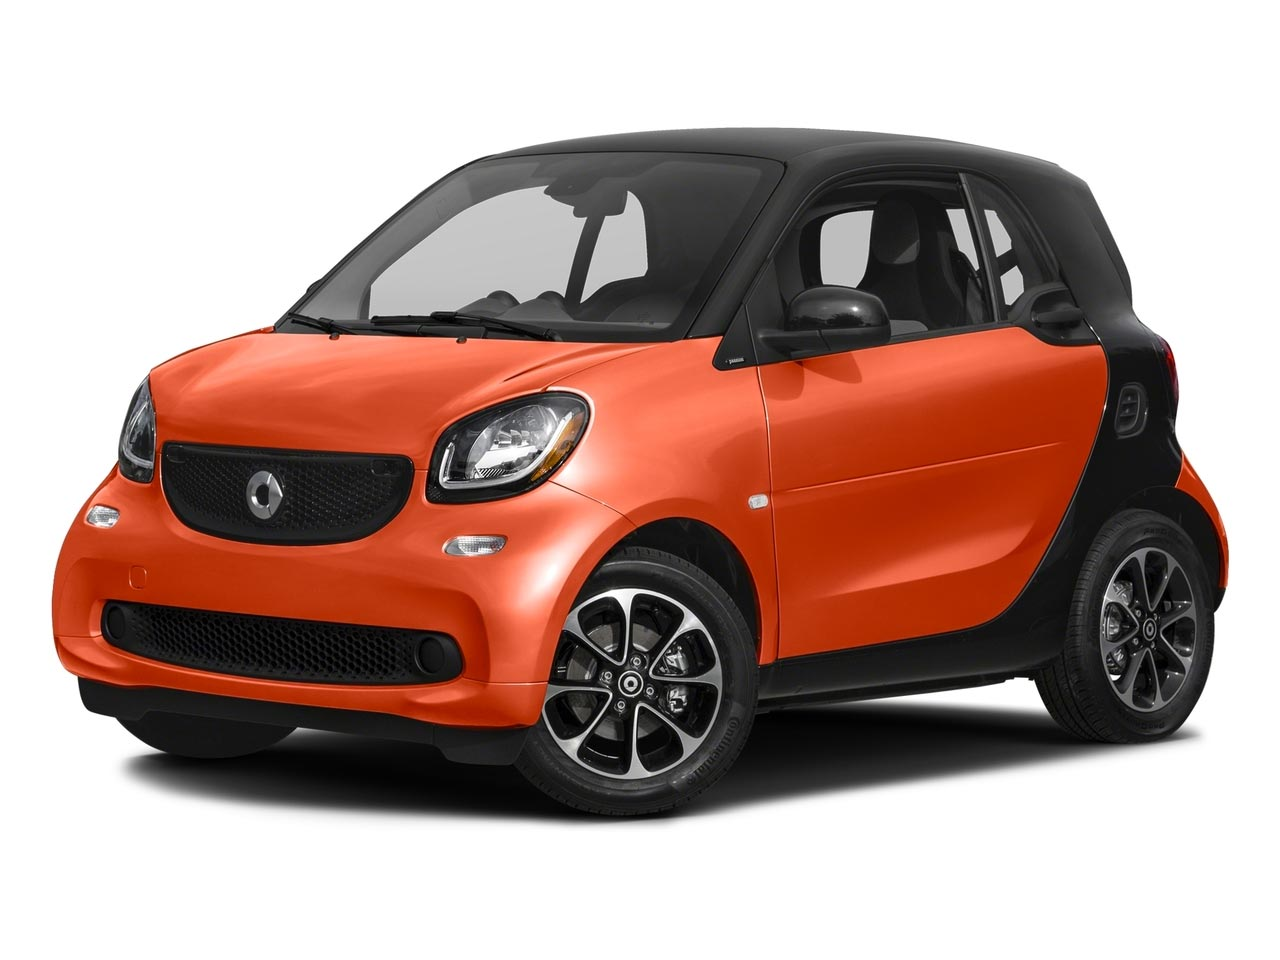 2016 smart car fortwo near orange county ca smart car for Mercedes benz dealers in orange county